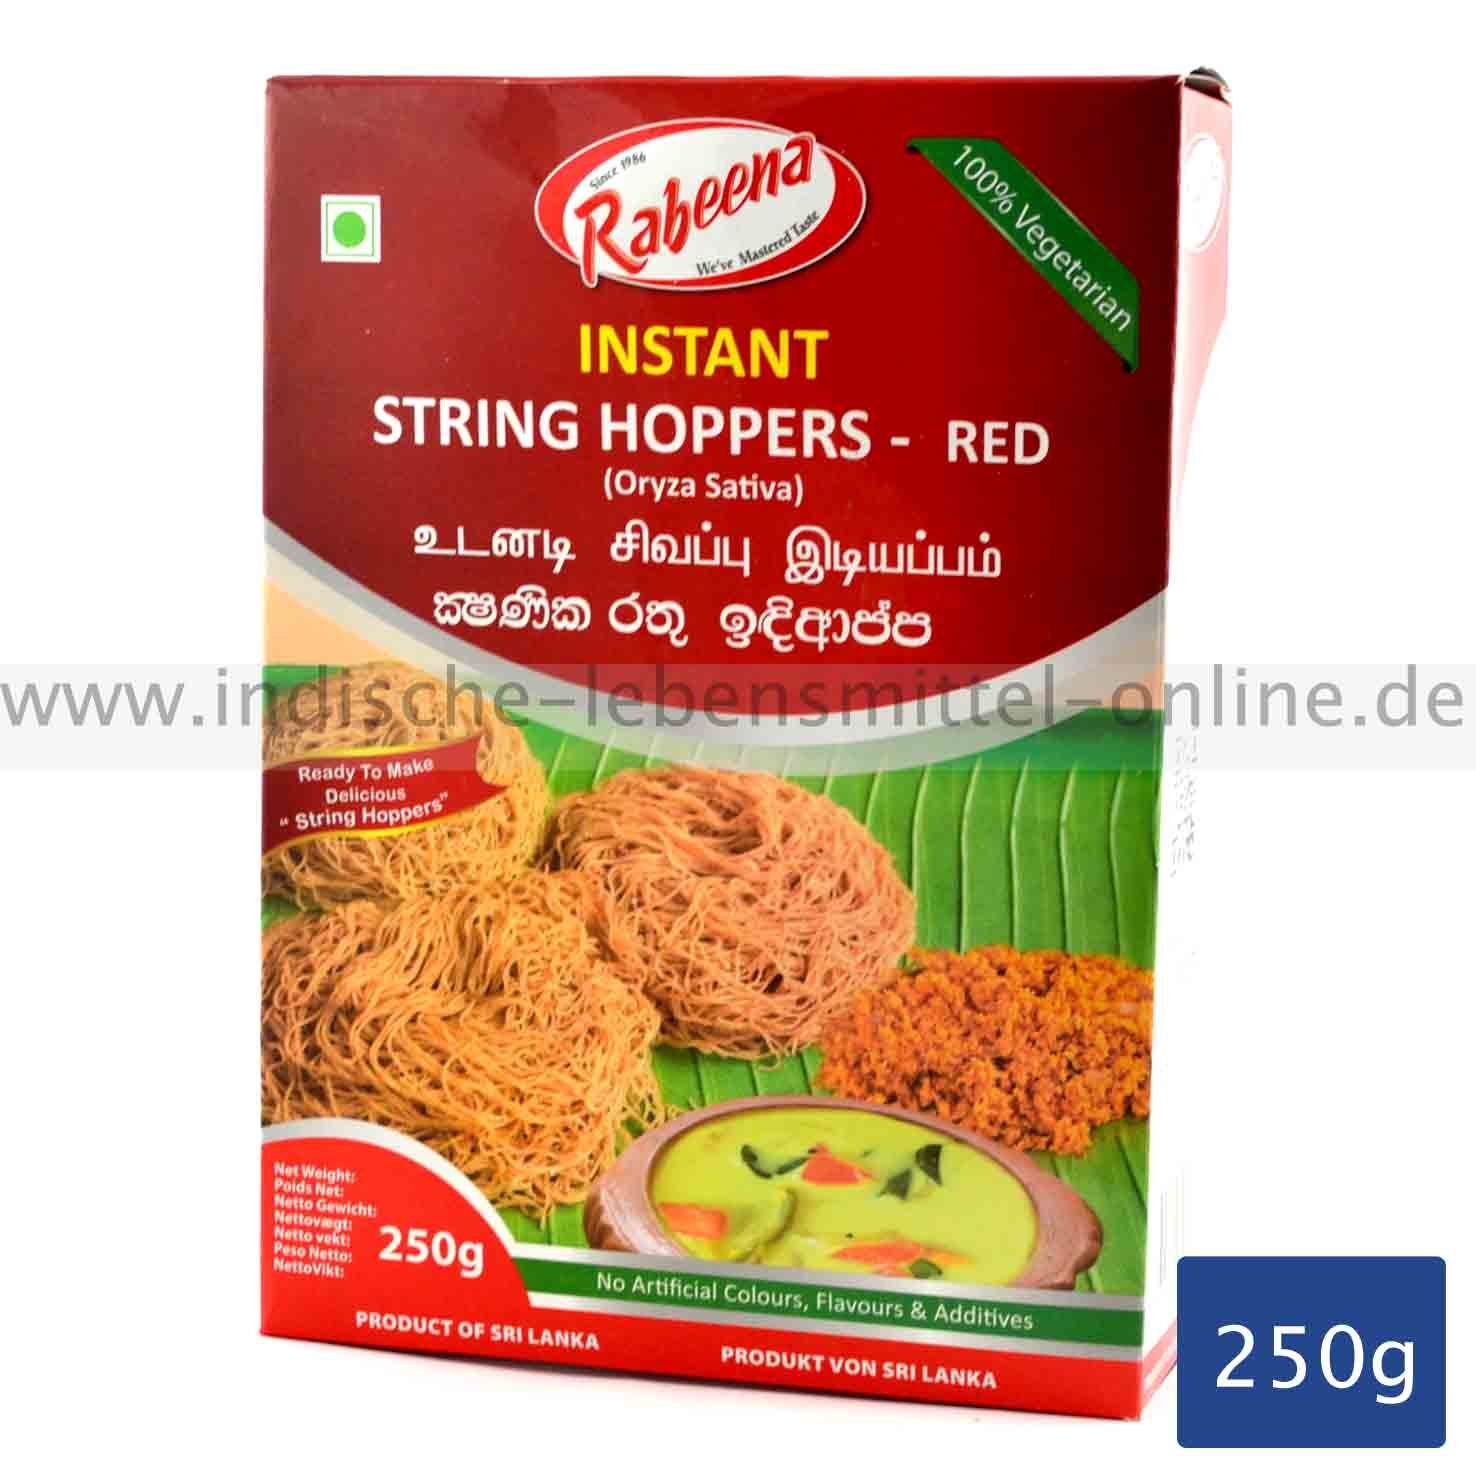 instant-string-hoppers-red-ready-to-eat-sri-lanka-rabeena-250g